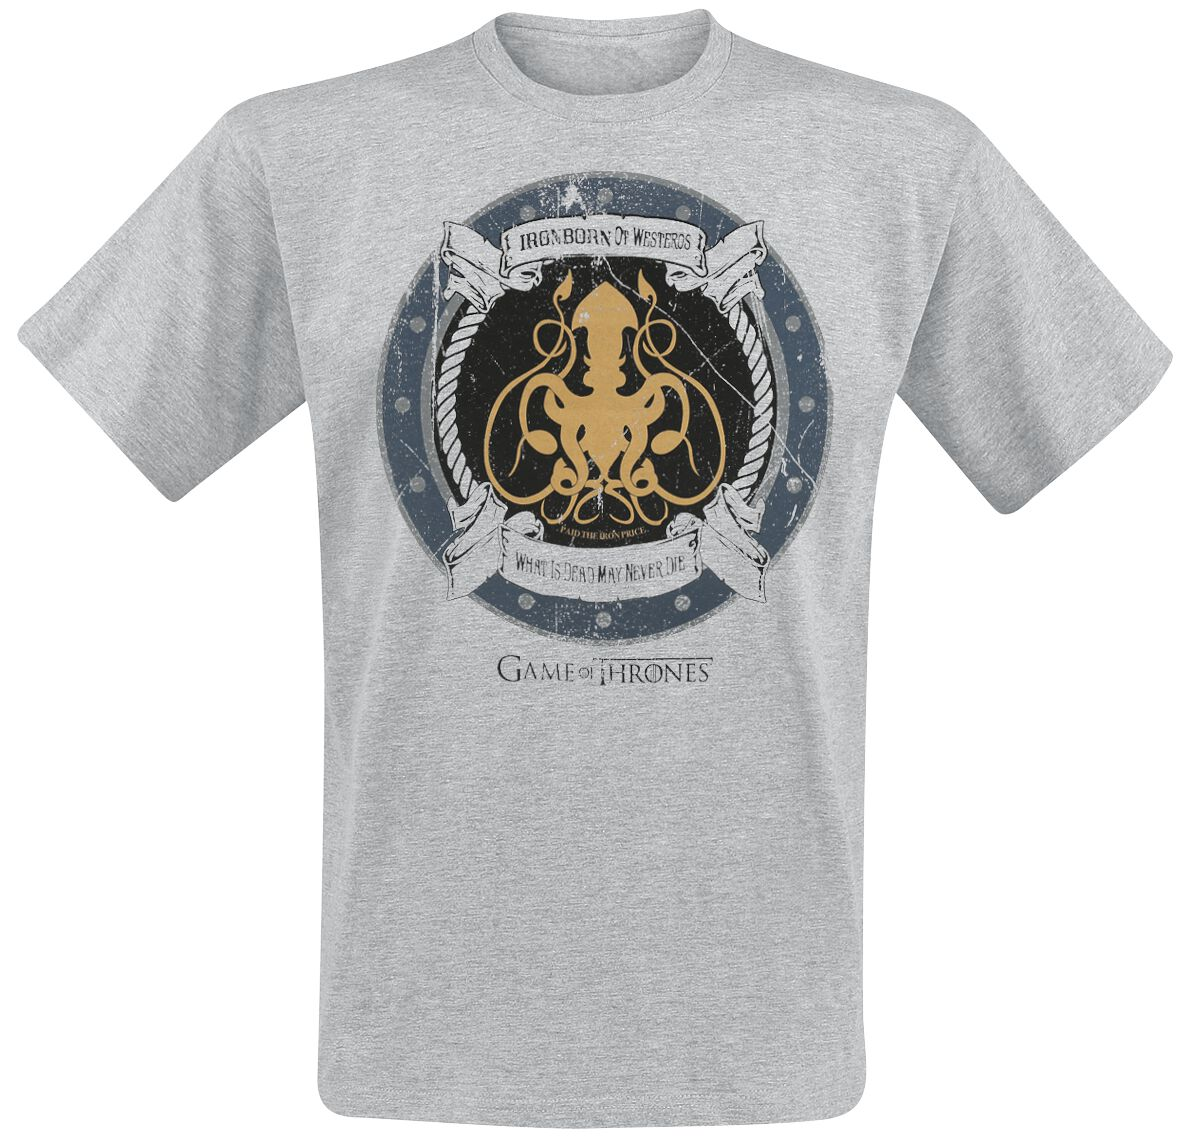 Image of   Game Of Thrones Ironborn Of Westeros T-Shirt grålig